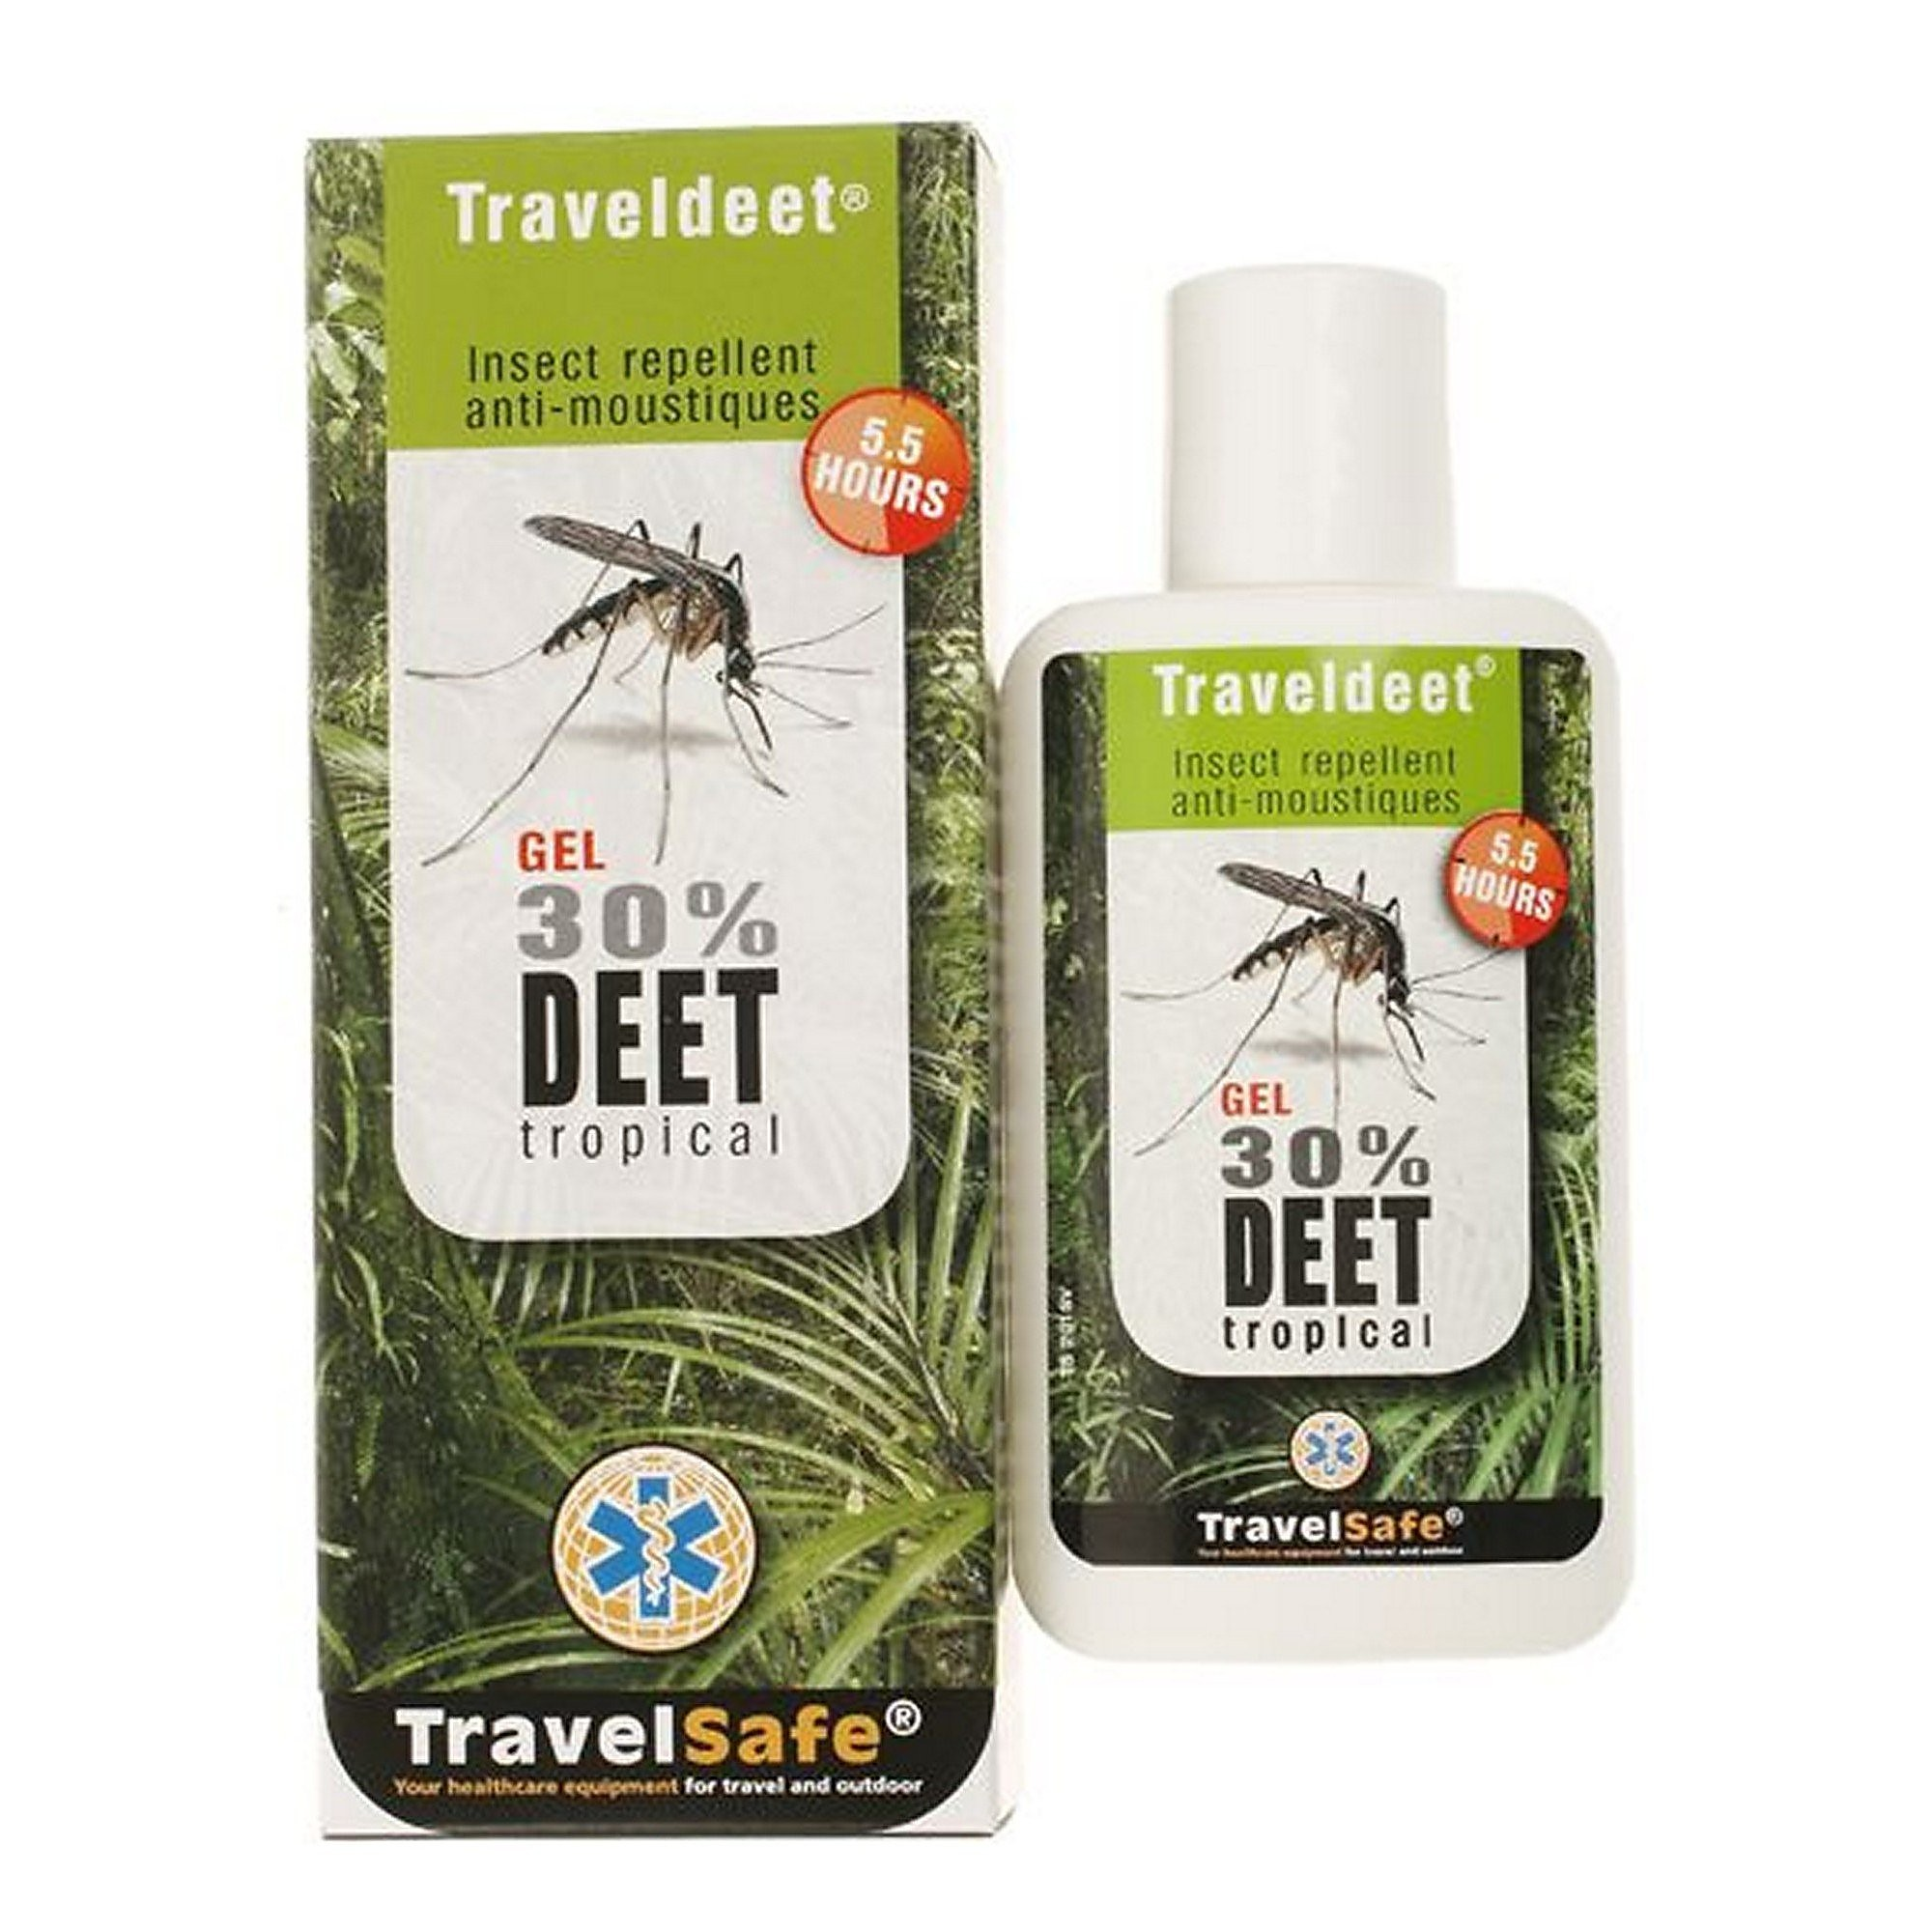 TRAVELSAFE TRAVELDEET 30 GEL